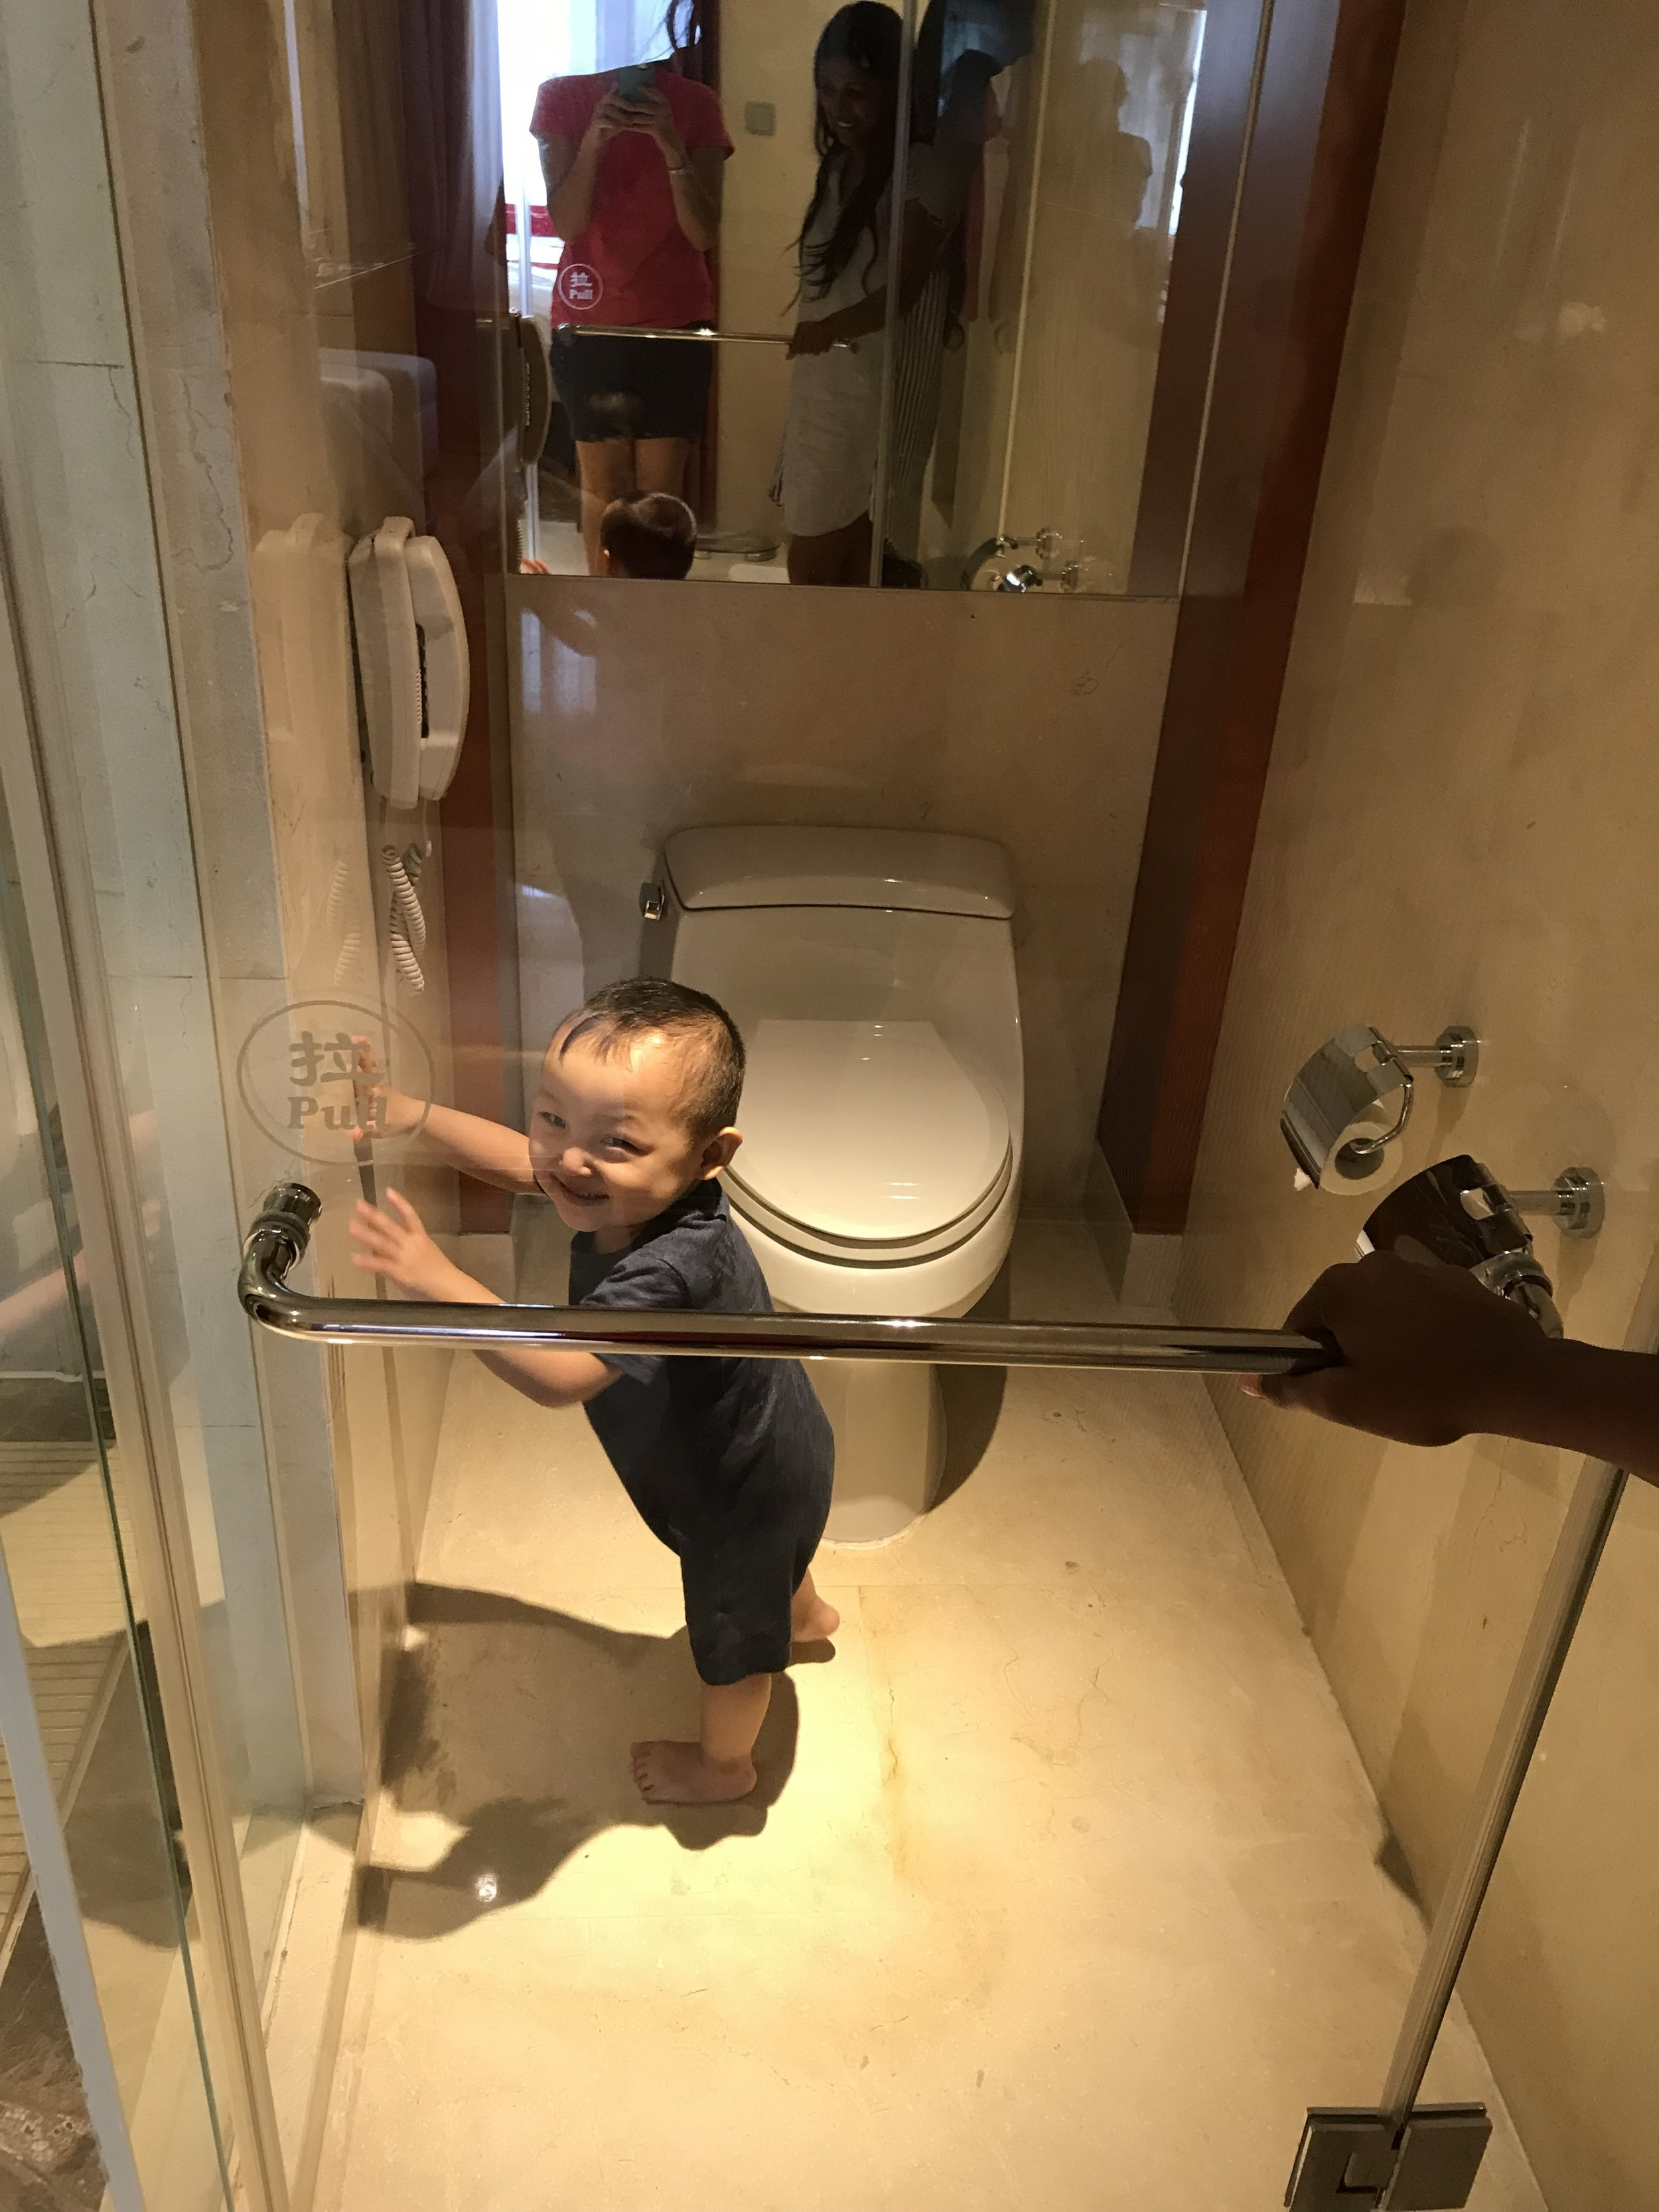 Why bother putting a GLASS door on the bathroom? Luke likes to mess with the toilet. Yeah!